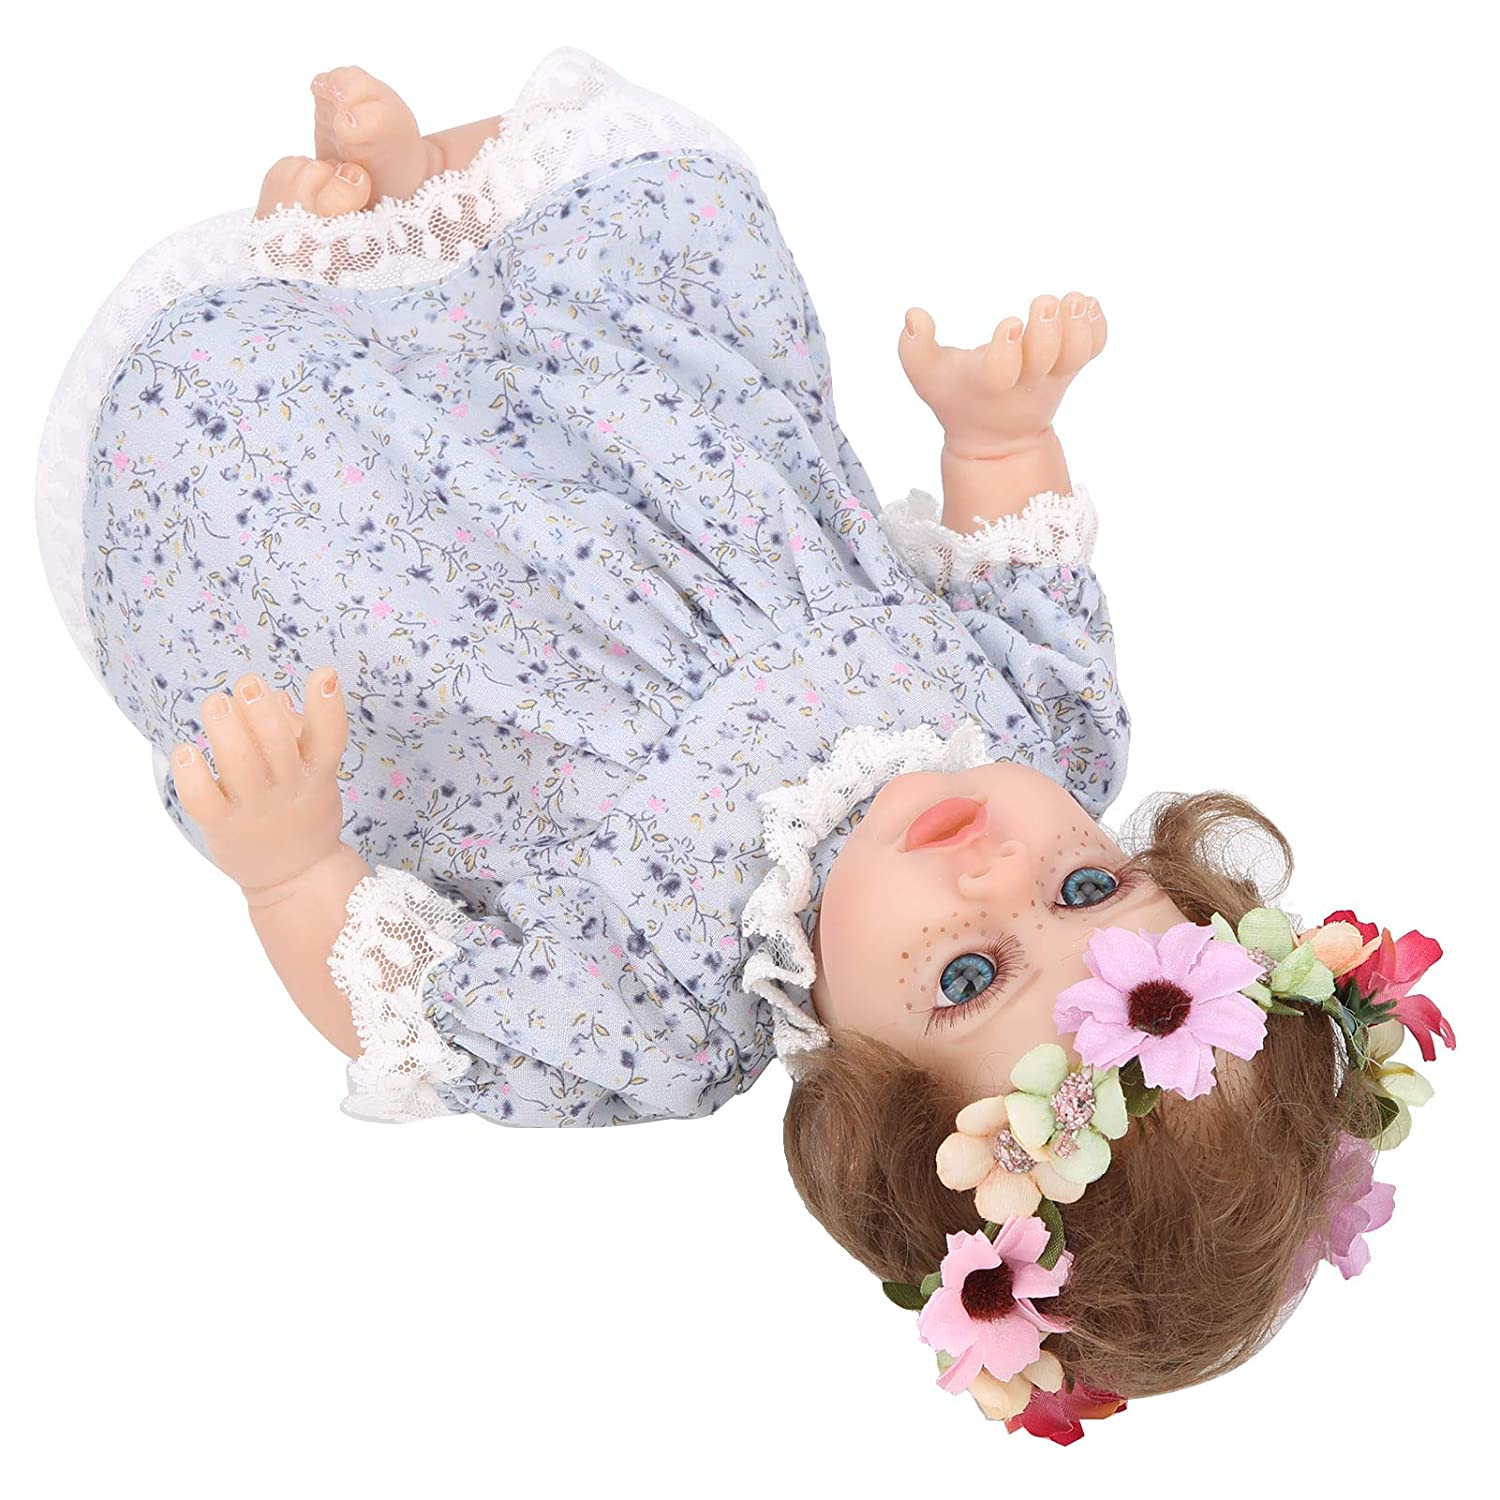 Reborn Las Vegas Mall Doll Clothes Girls Baby 3 Spring new work Limb Photography Props 4